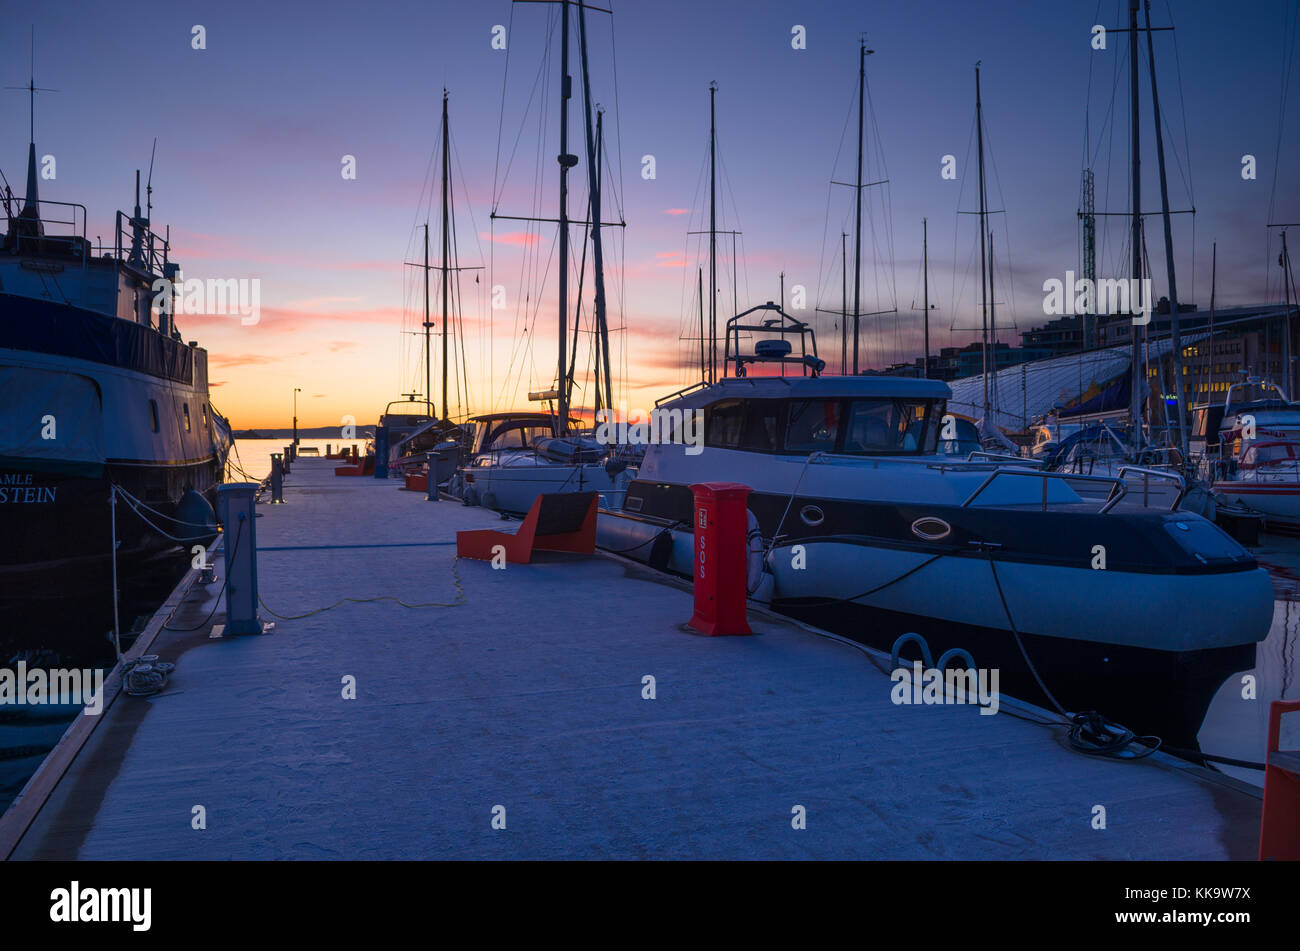 Yachts moored to frosty floating pier in Aker Brygge Marina in Oslo, Norway, with beautiful sunset in the background. - Stock Image